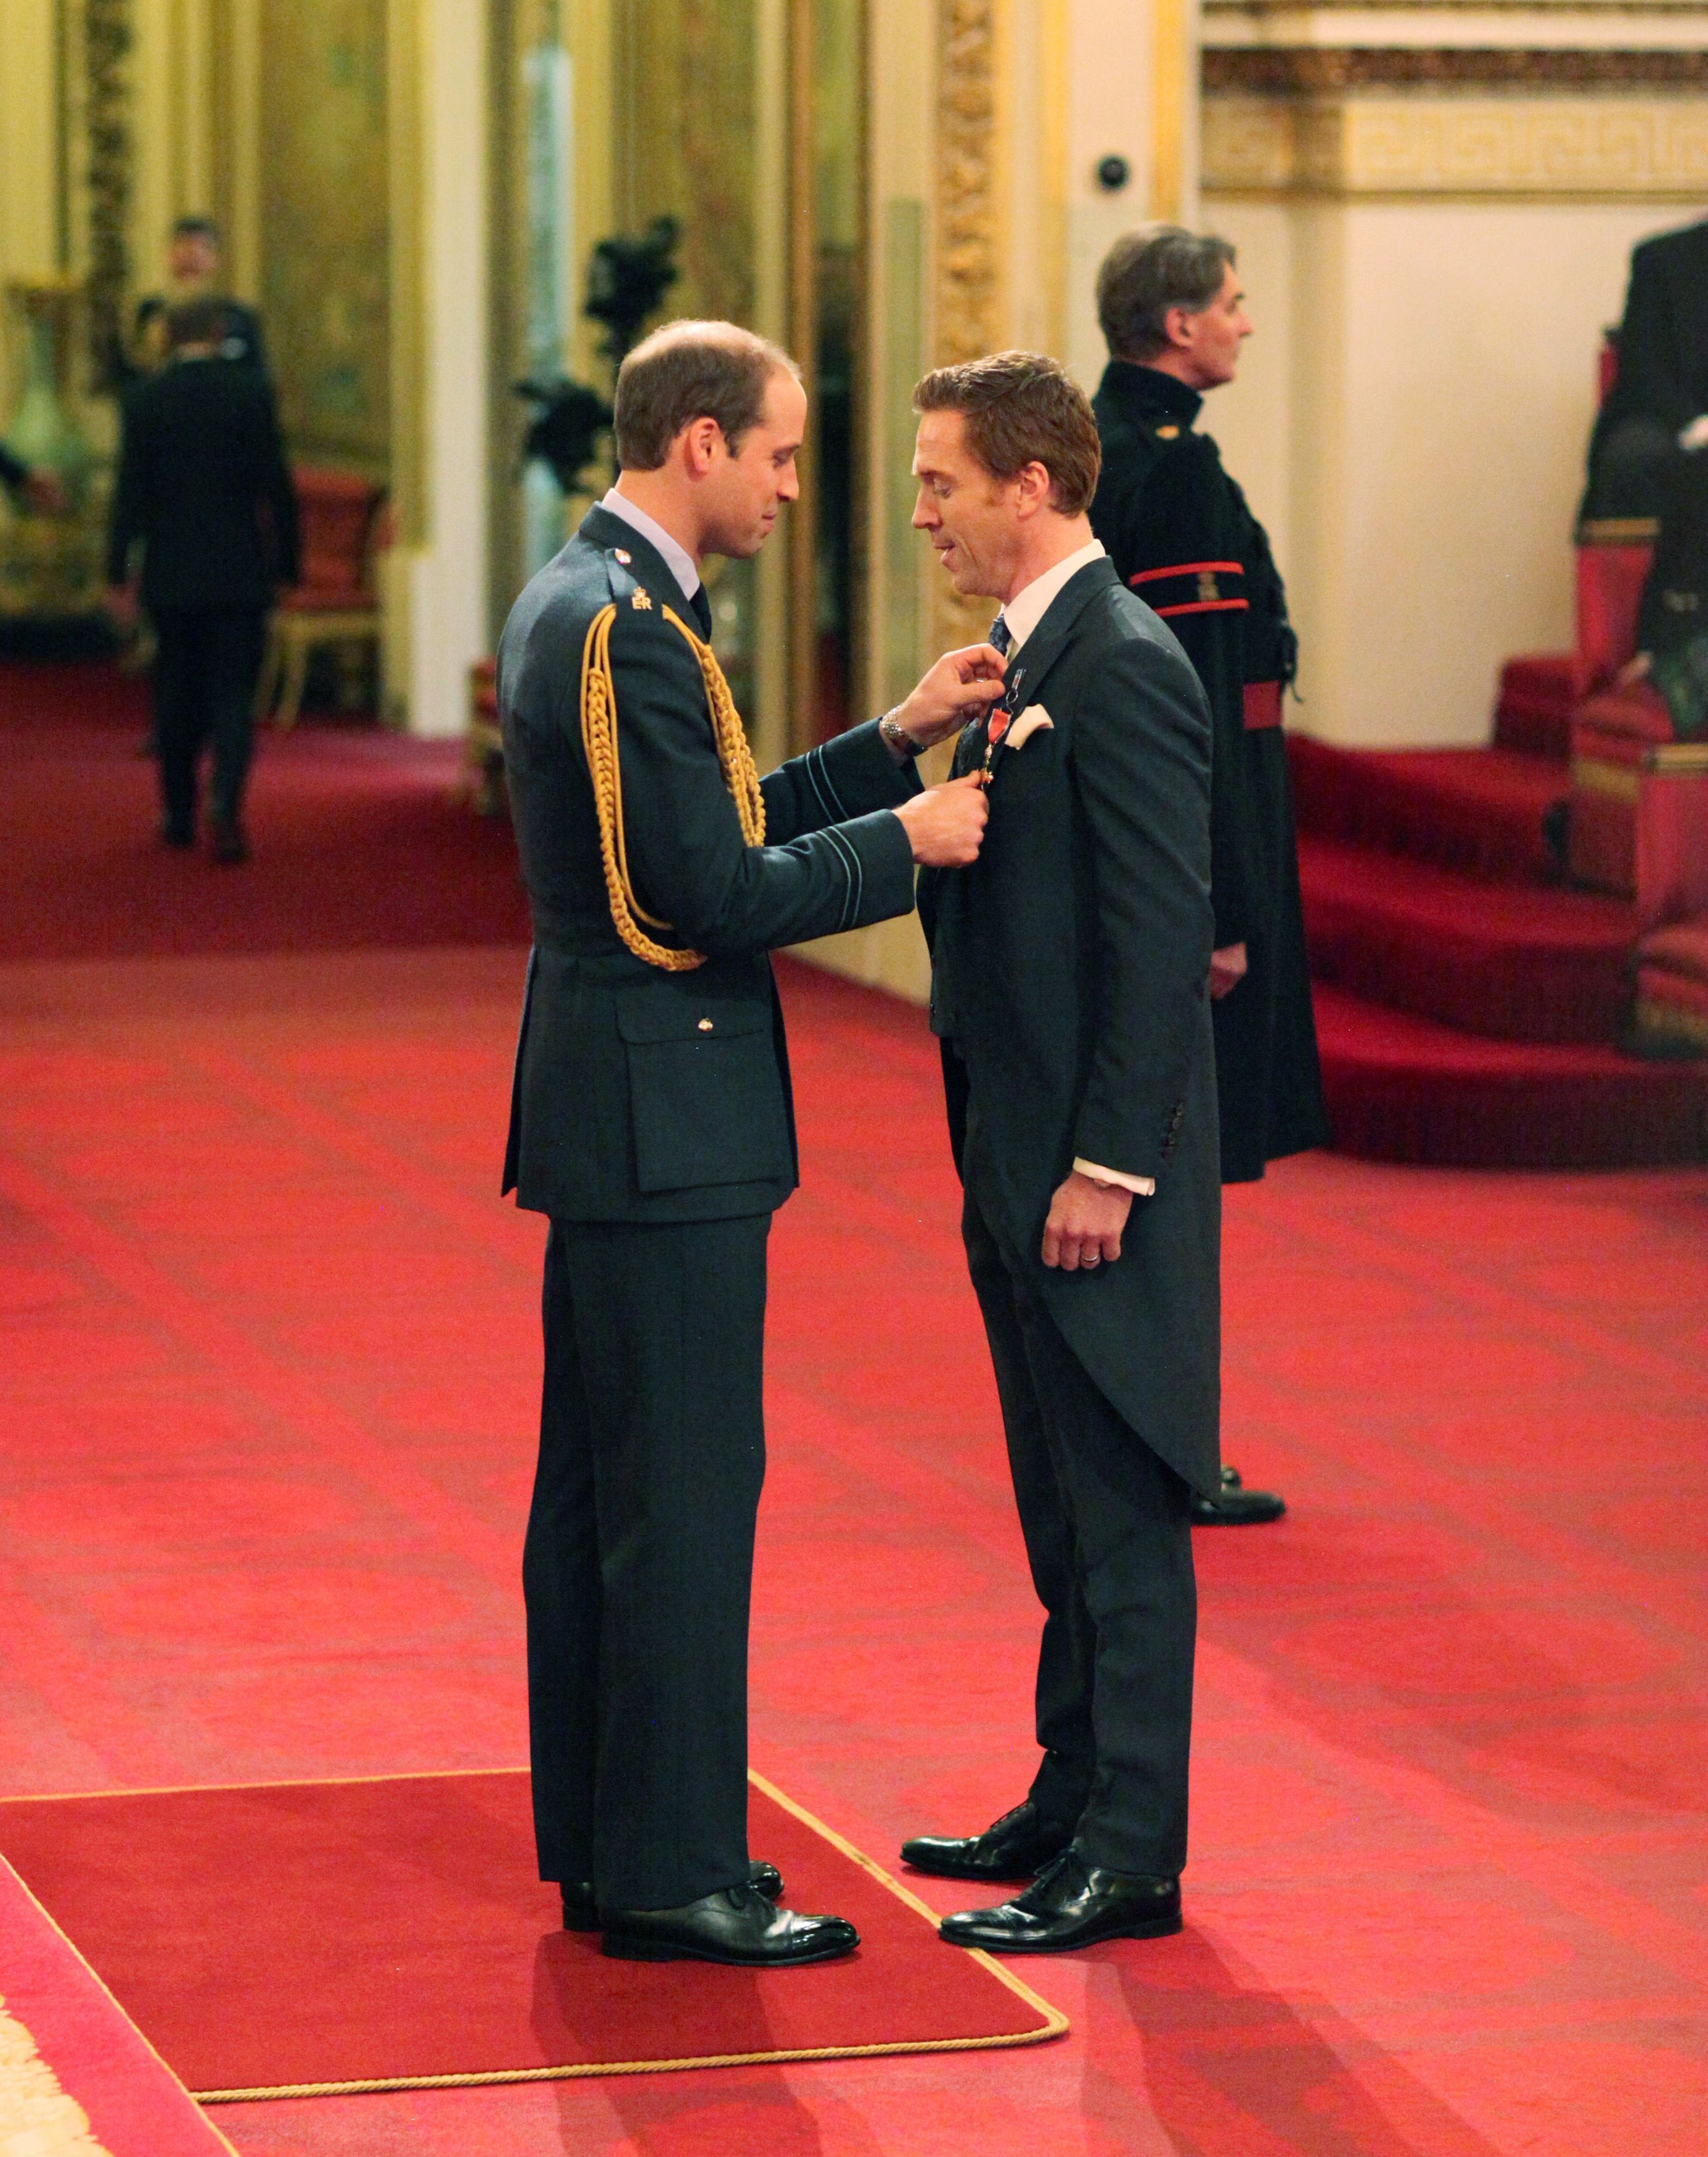 Investitures at Buckingham Palace. Damian Lewis from London is made an Officer of the Order of the British Empire (OBE) by the Duke of Cambridge during an Investiture ceremony at Buckingham Palace on Nov. 26, 2014.